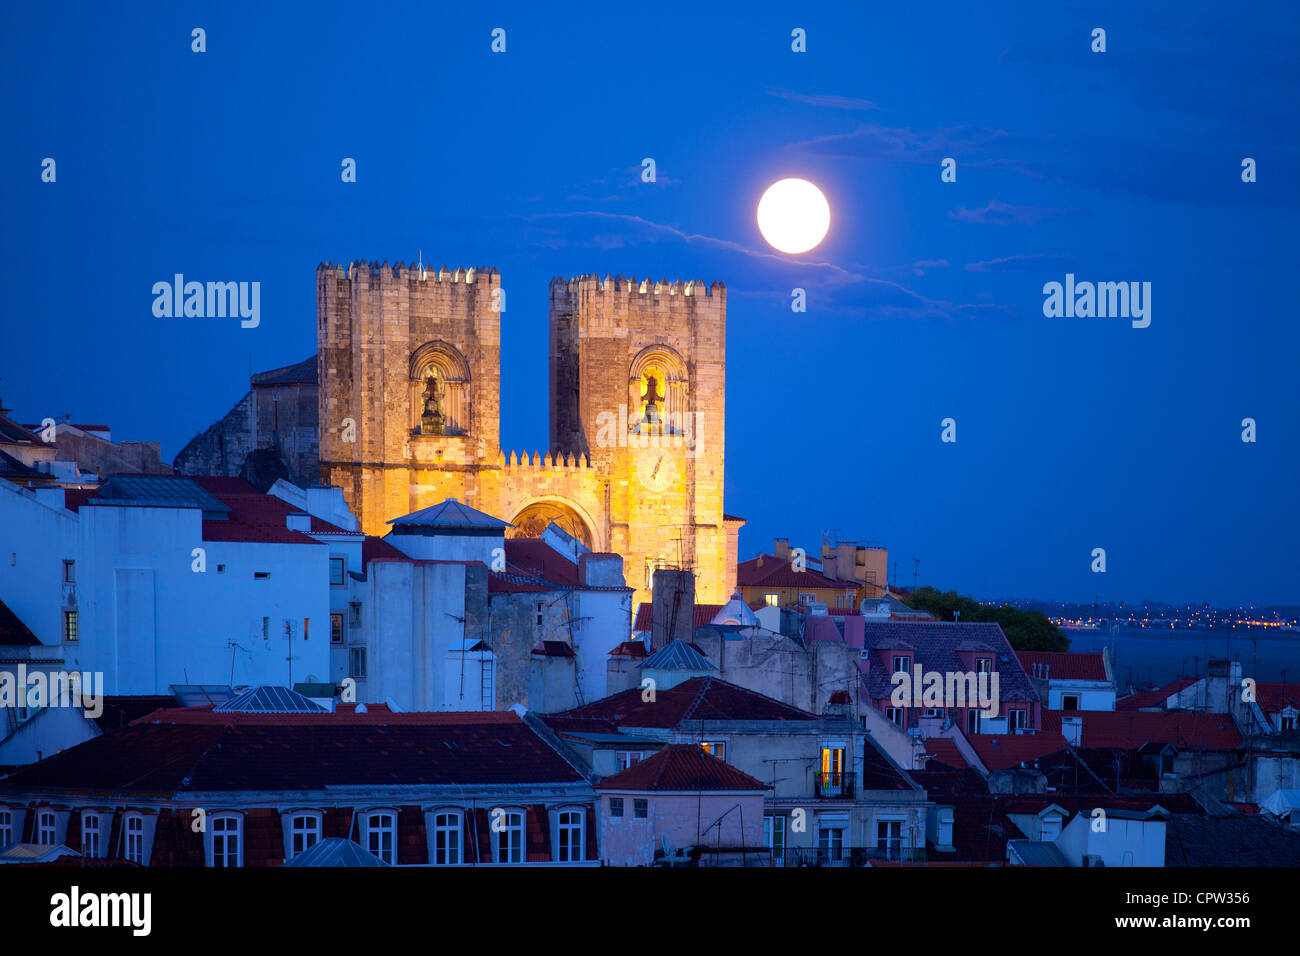 Patriarchal Cathedral of St. Mary Major, Lisbon, Portugal at twilight with moon rise - Stock Image